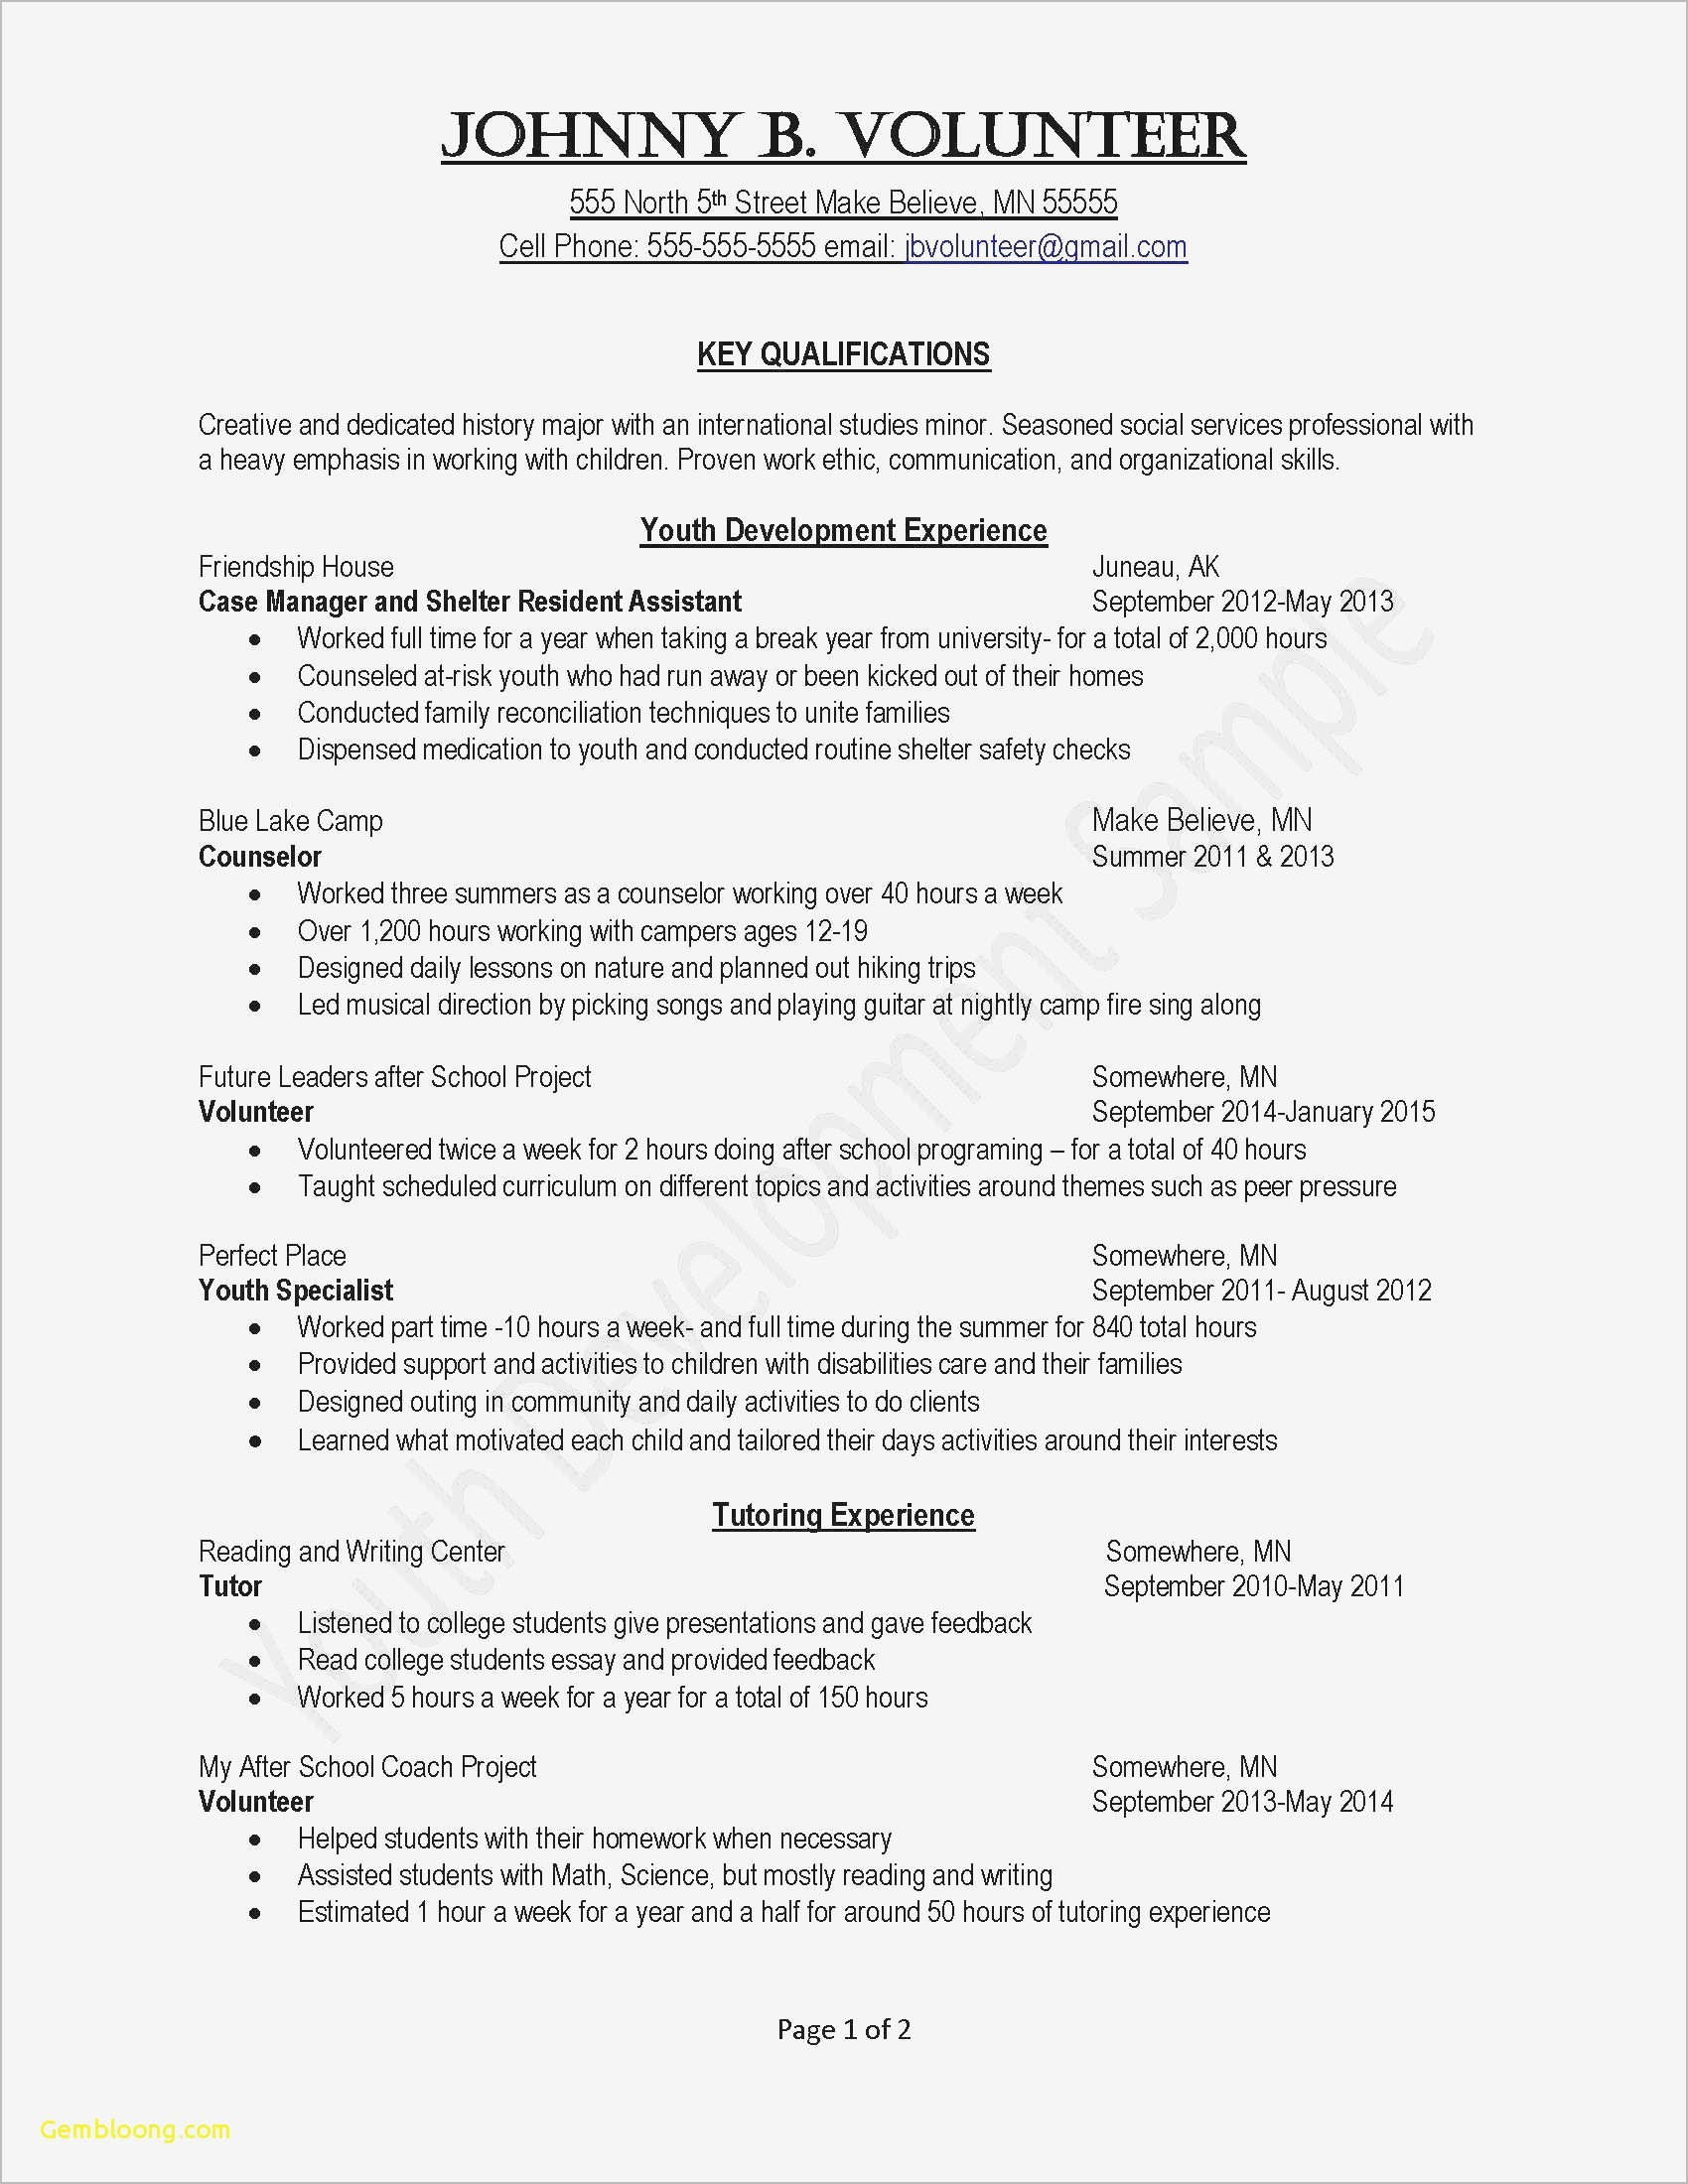 Cover Letter Template Word - Job Fer Letter Template Us Copy Od Consultant Cover Letter Fungram